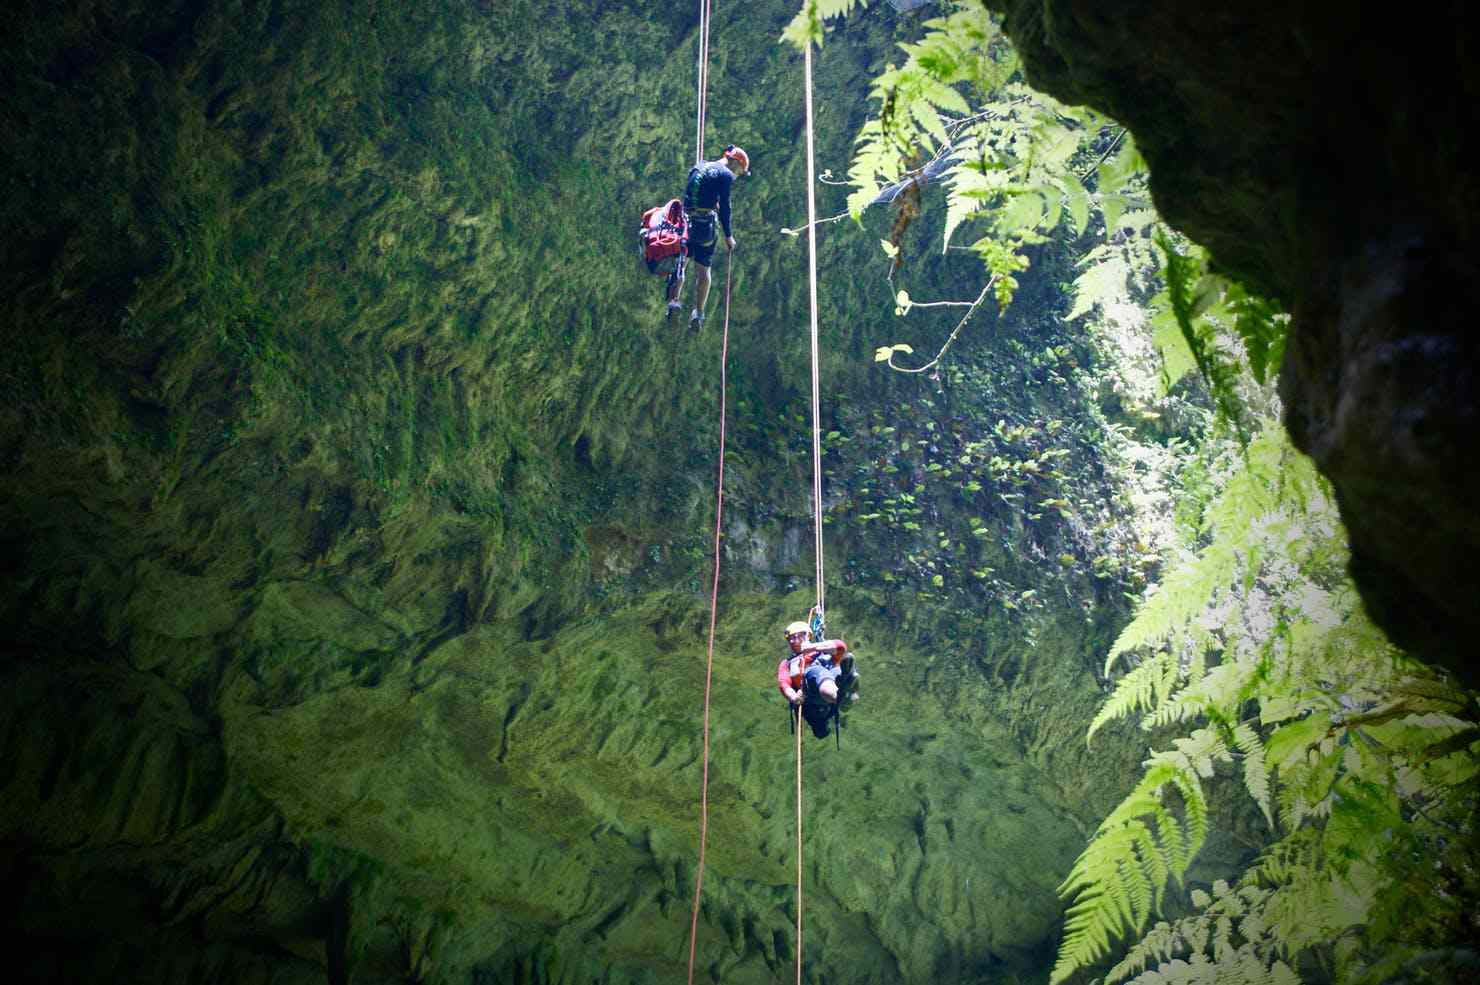 Rappelling down a mountain using Tyroleans